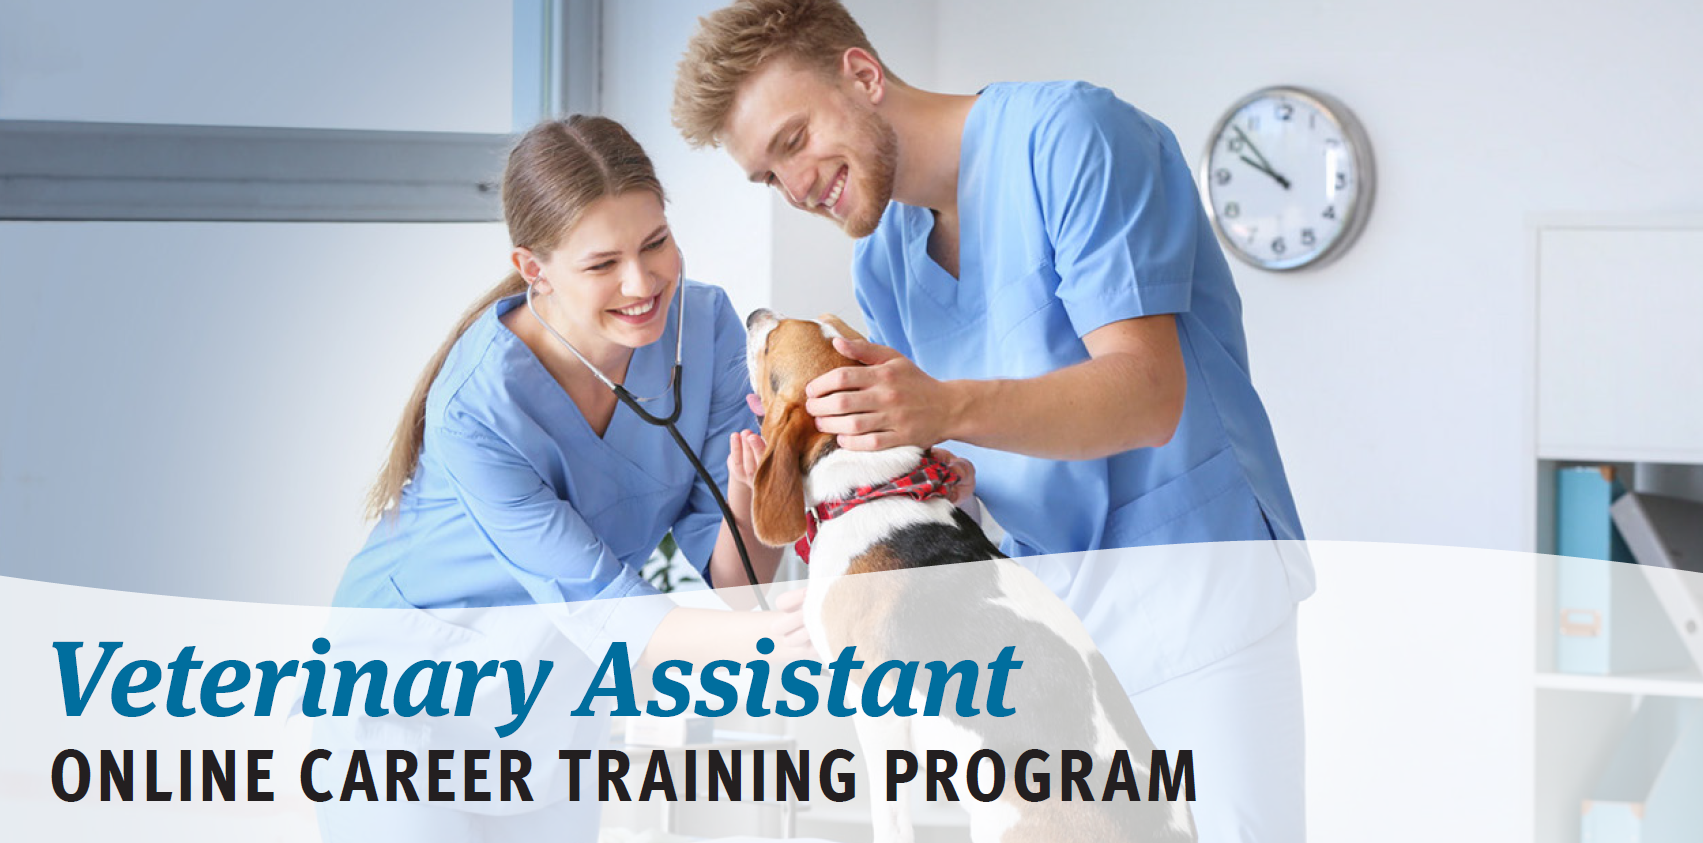 Veterinary Assistance Online Career Training Program